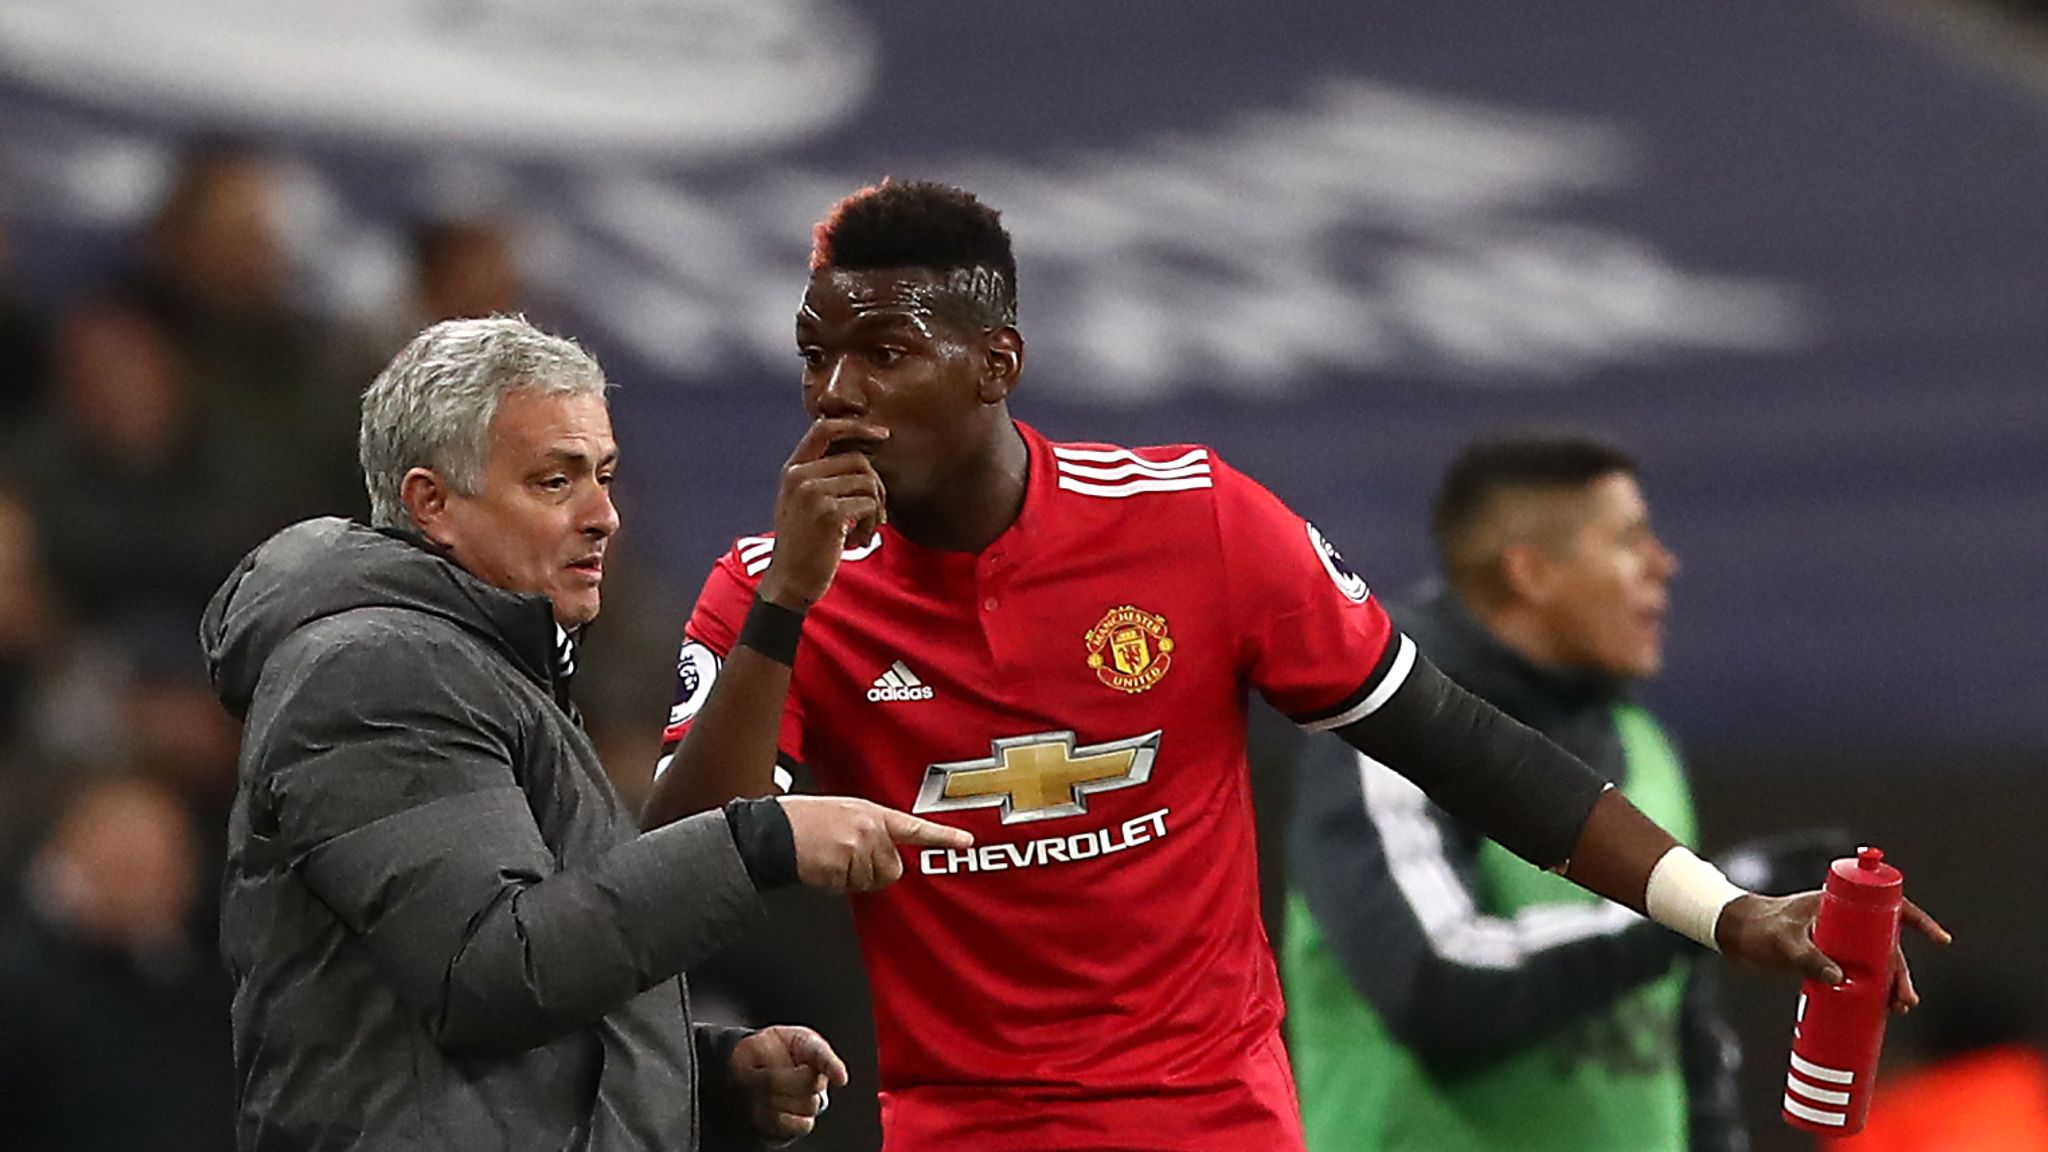 Paul Pogba V Jose Mourinho Their Relationship At Manchester United In Quotes Football News Sky Sports